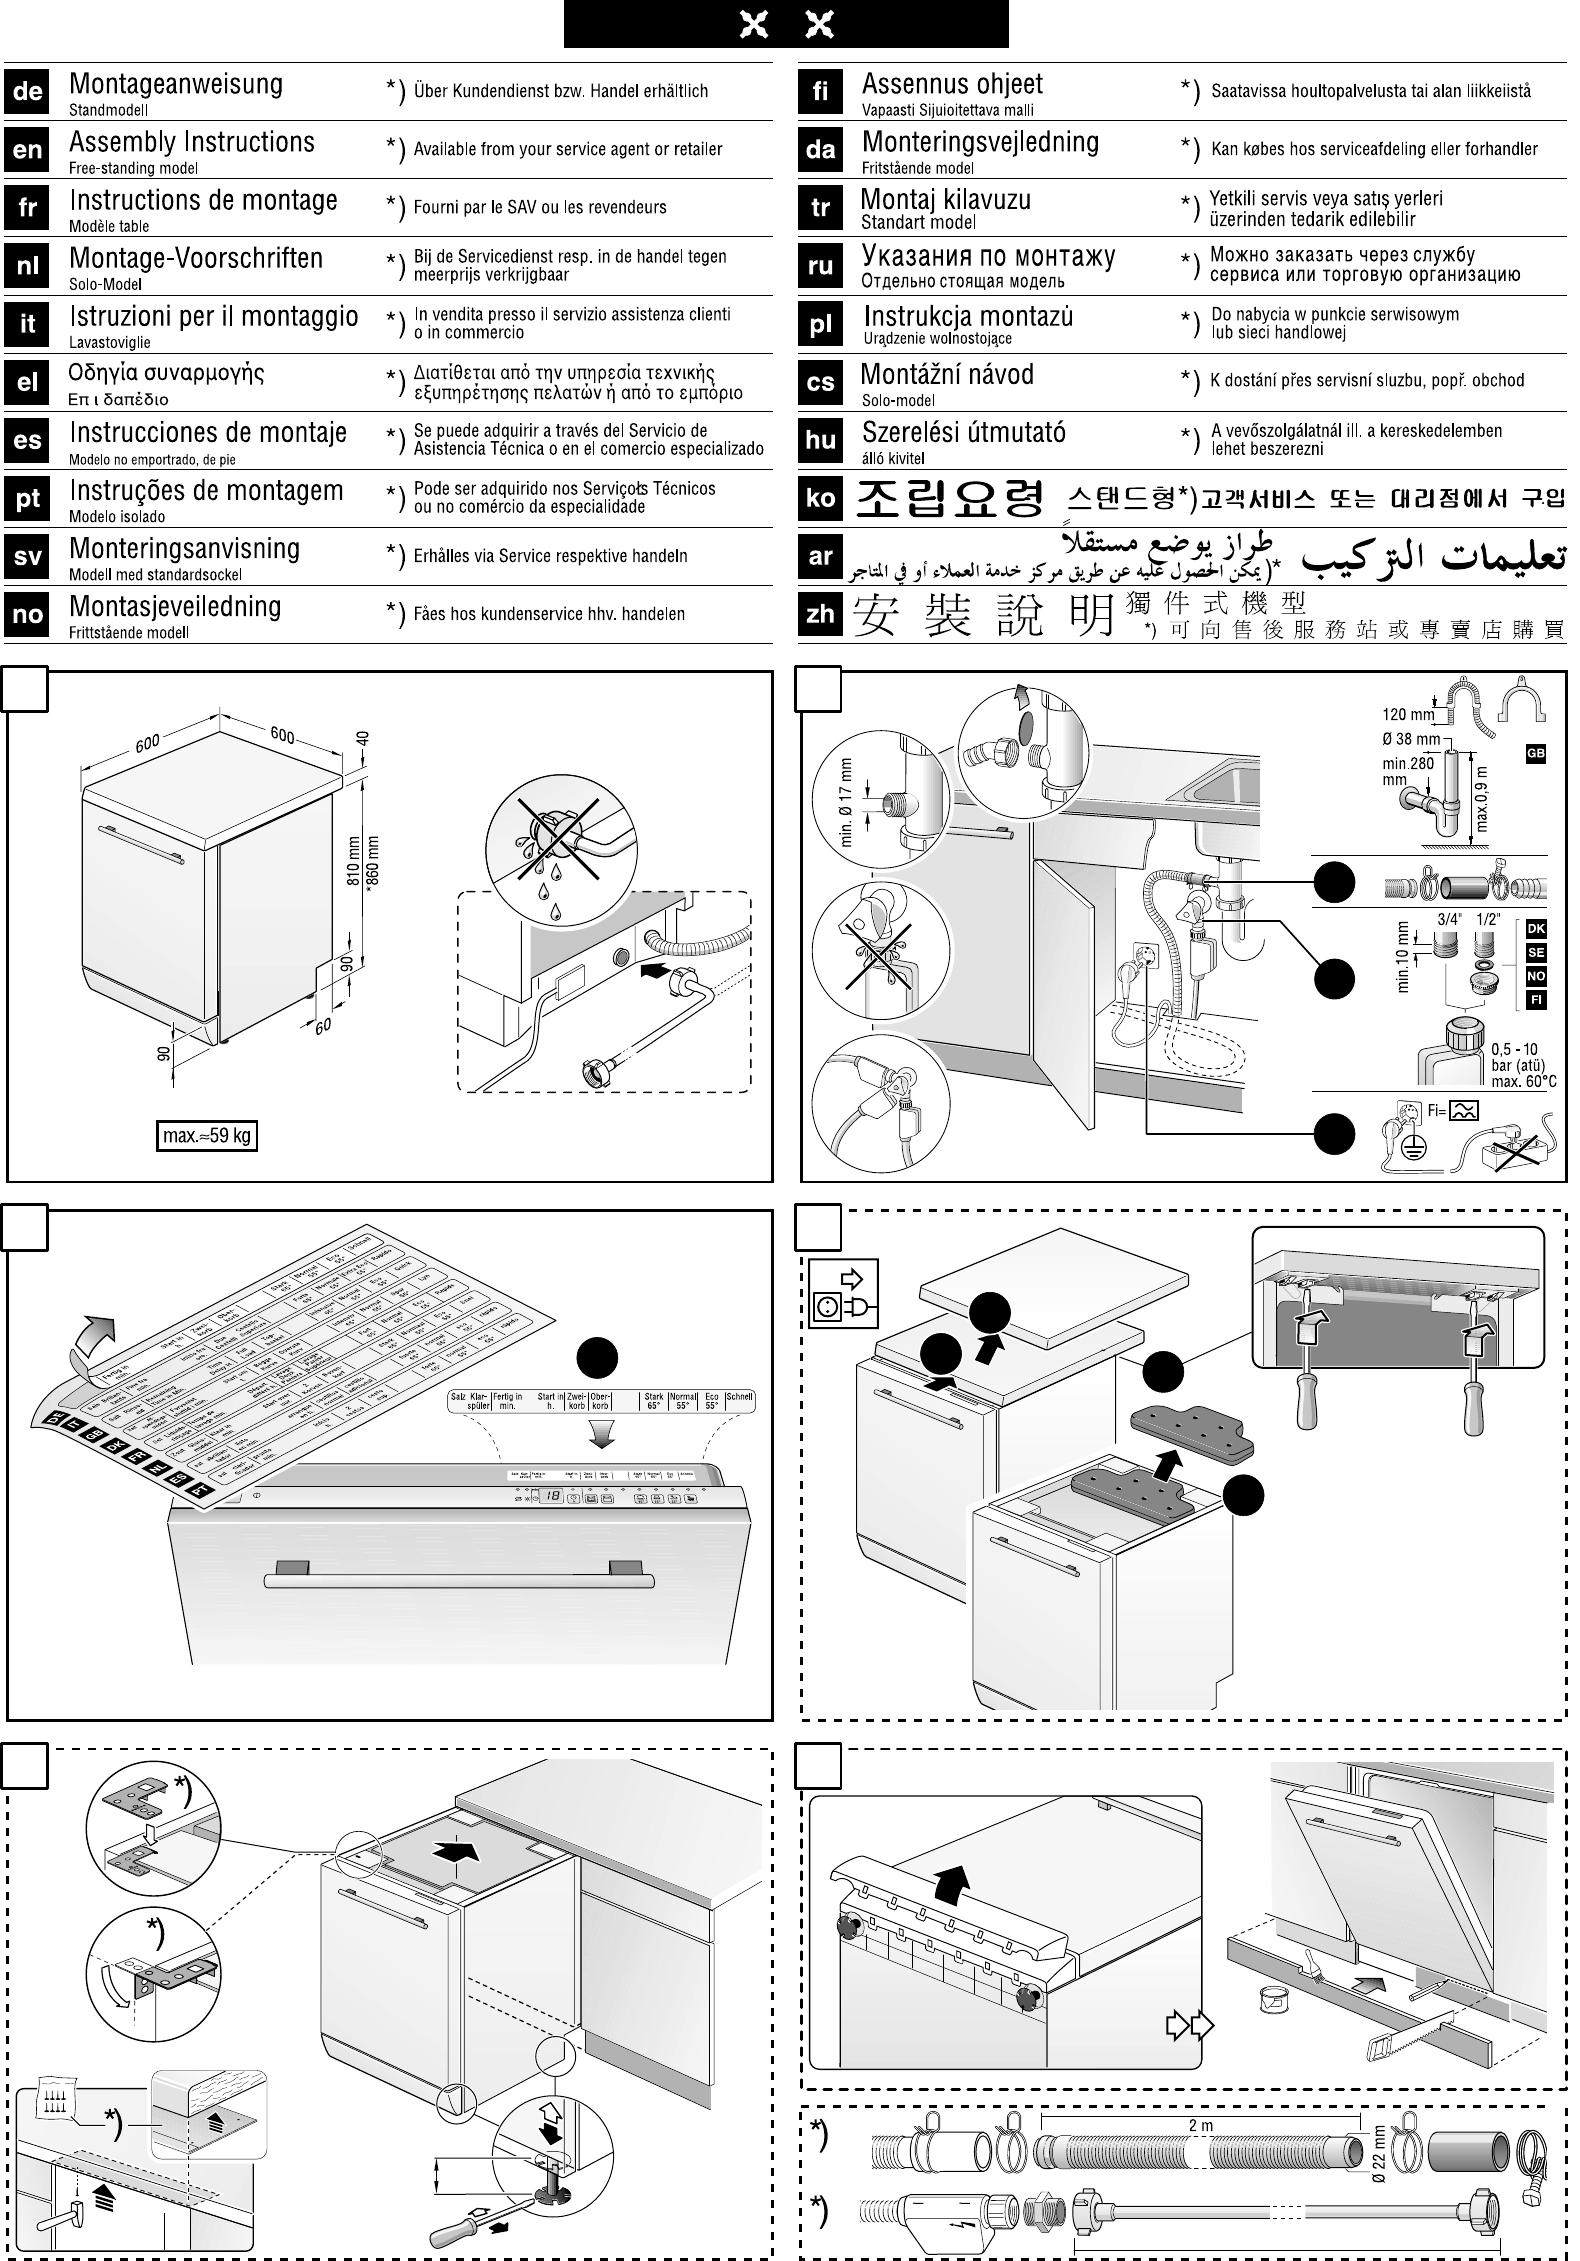 Se 24031 gb22 on whirlpool dishwasher schematic diagram